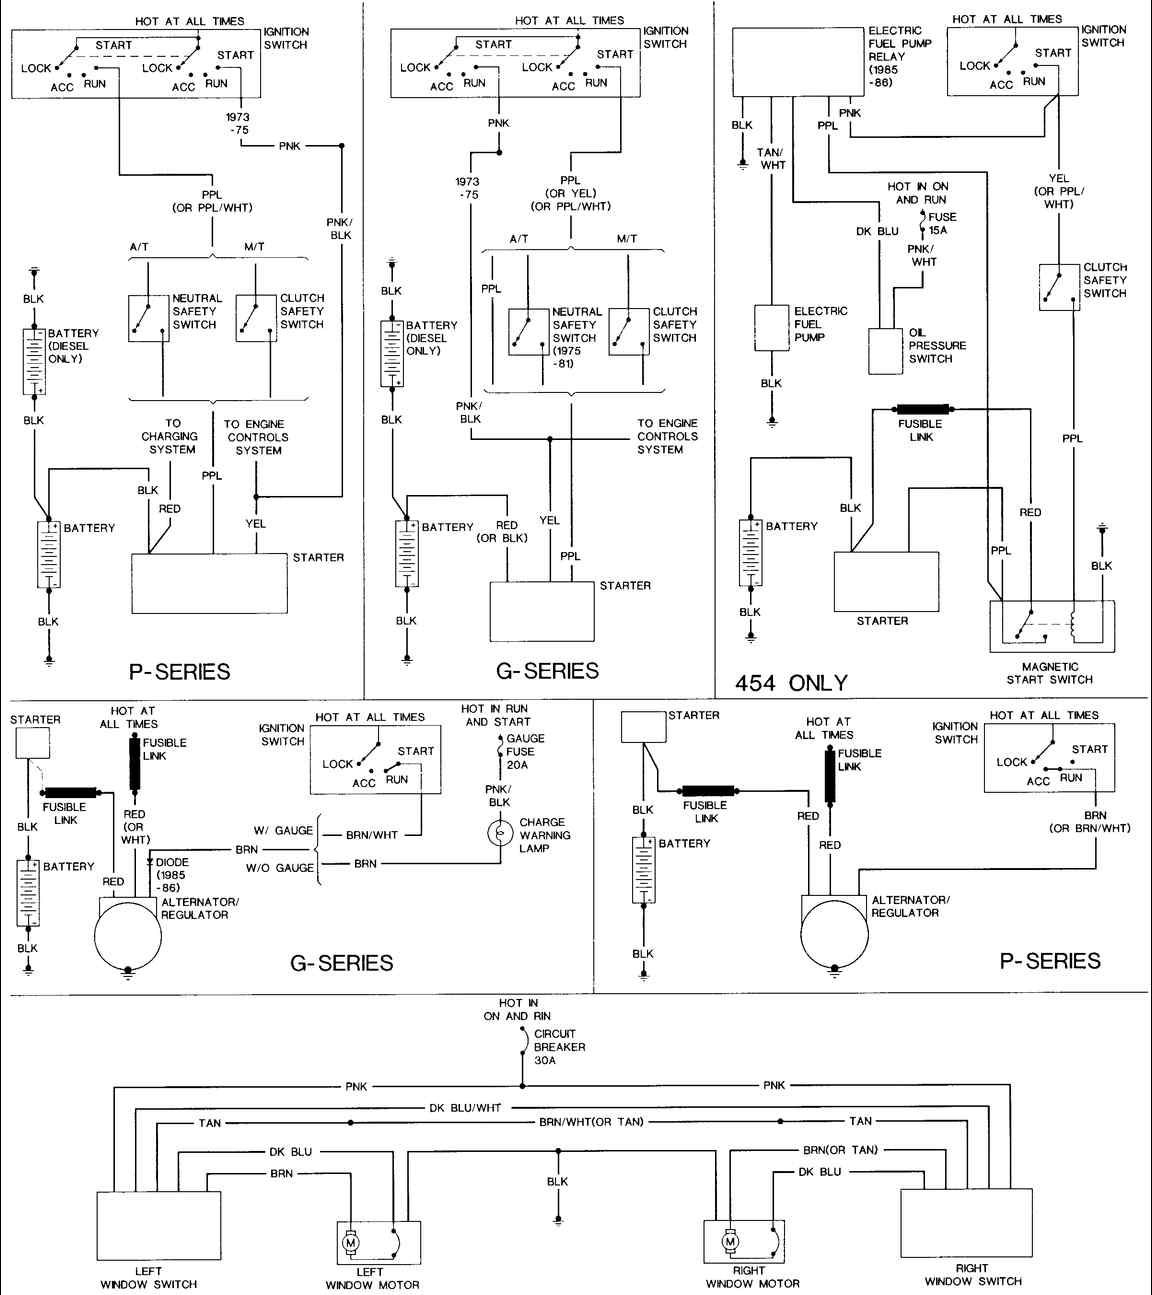 85 chevy truck wiring diagram 85 chevy van the steering column 1984 column blazer wiring k 5 diagram steering [ 1152 x 1295 Pixel ]